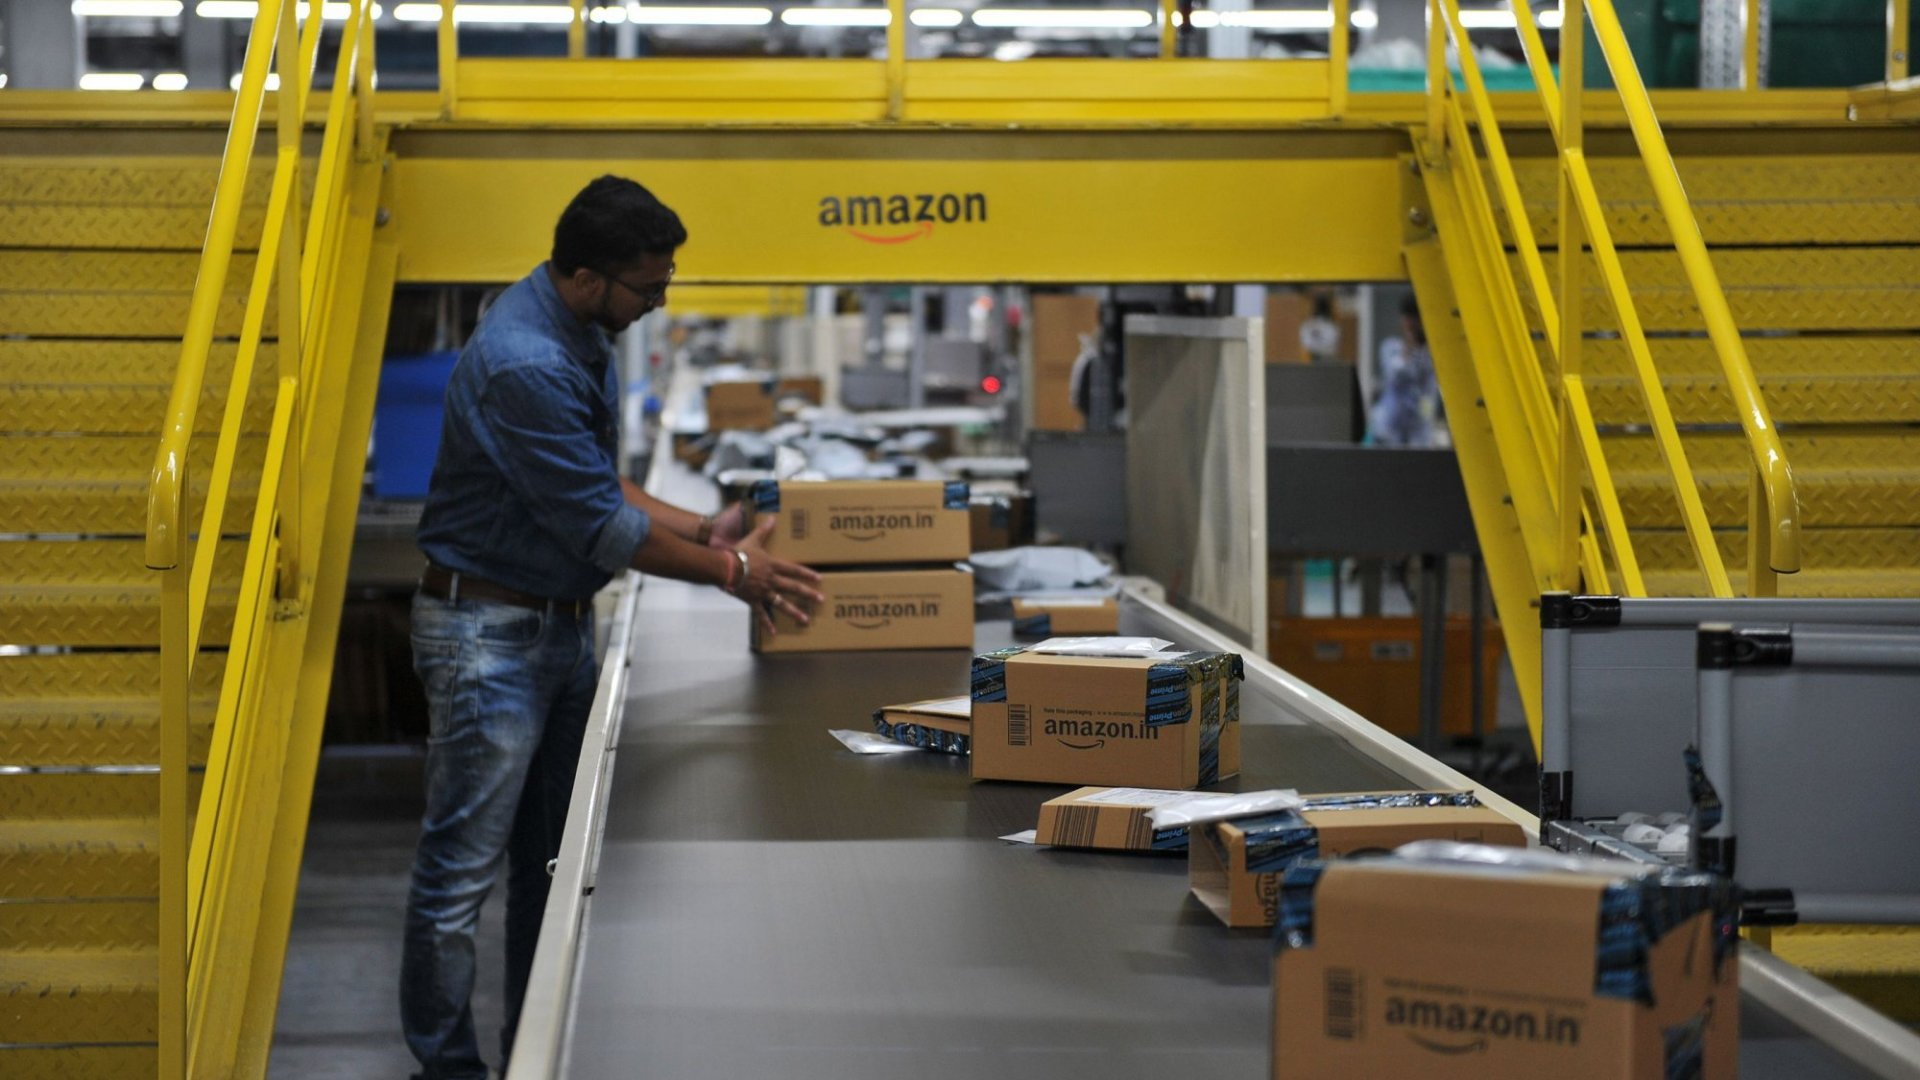 Amazon Now Employs Over Half a Million People, and It Plans to Hire Thousands More